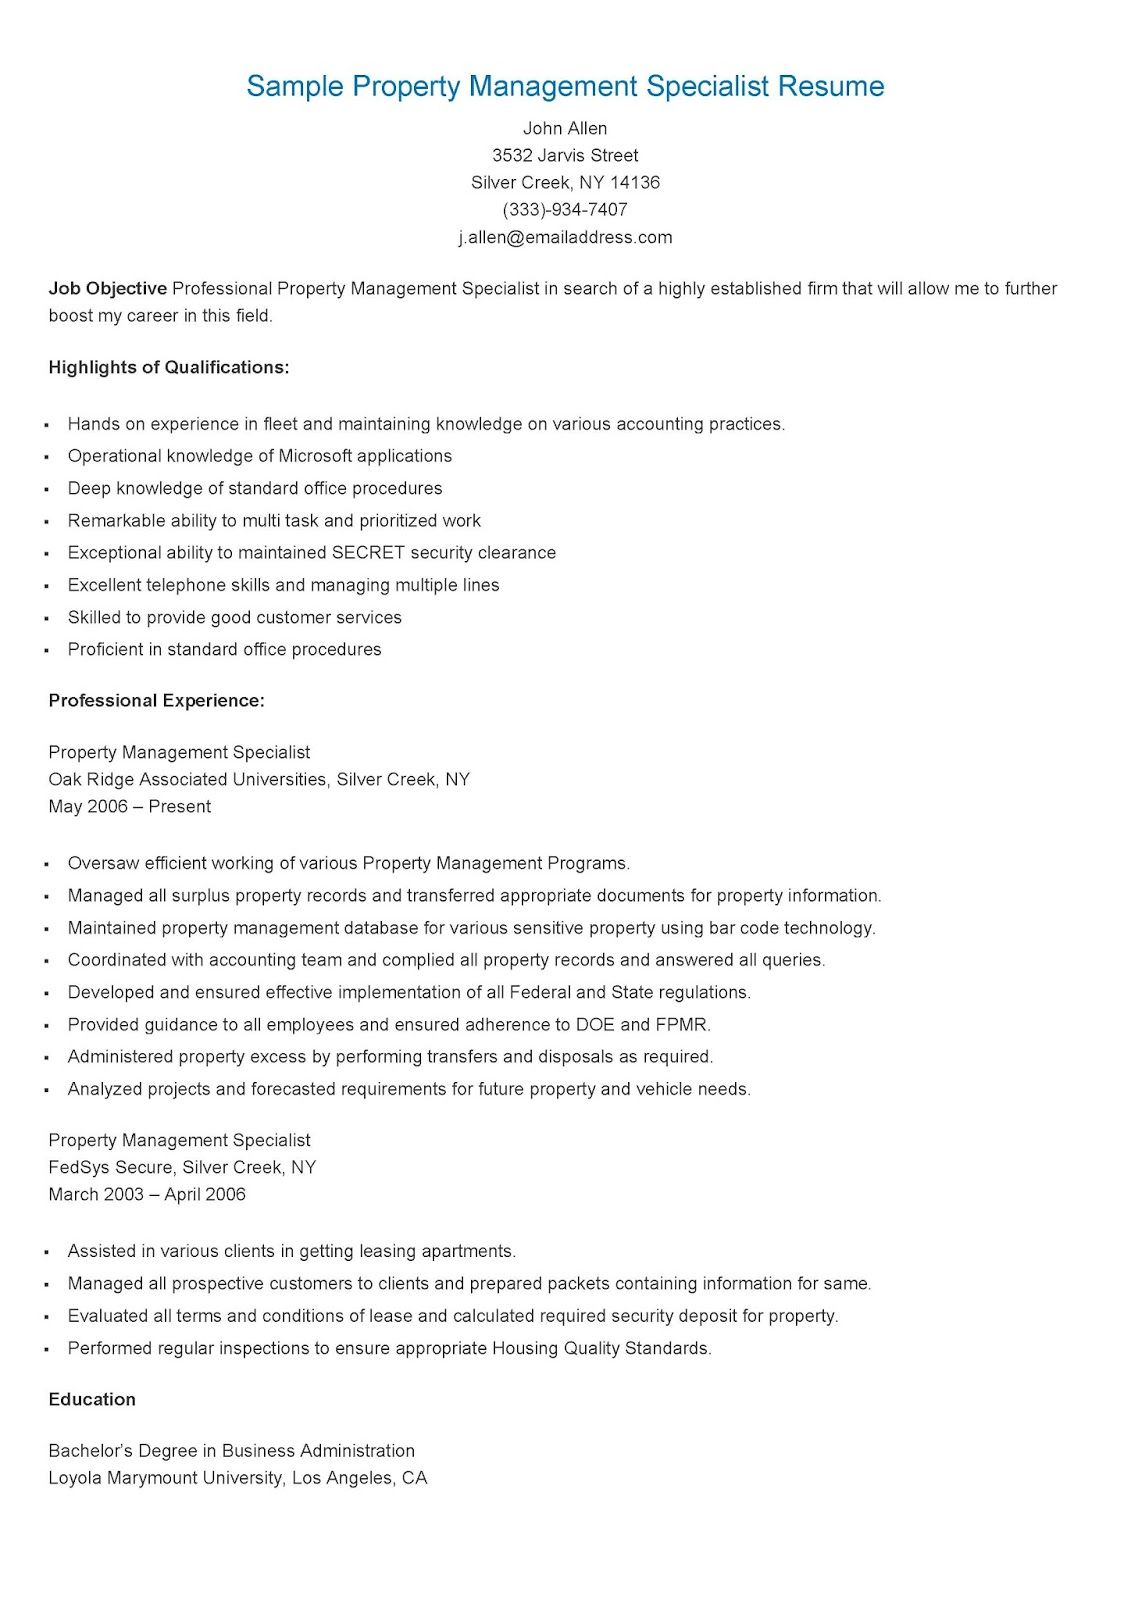 sample property management specialist resume resame pinterest